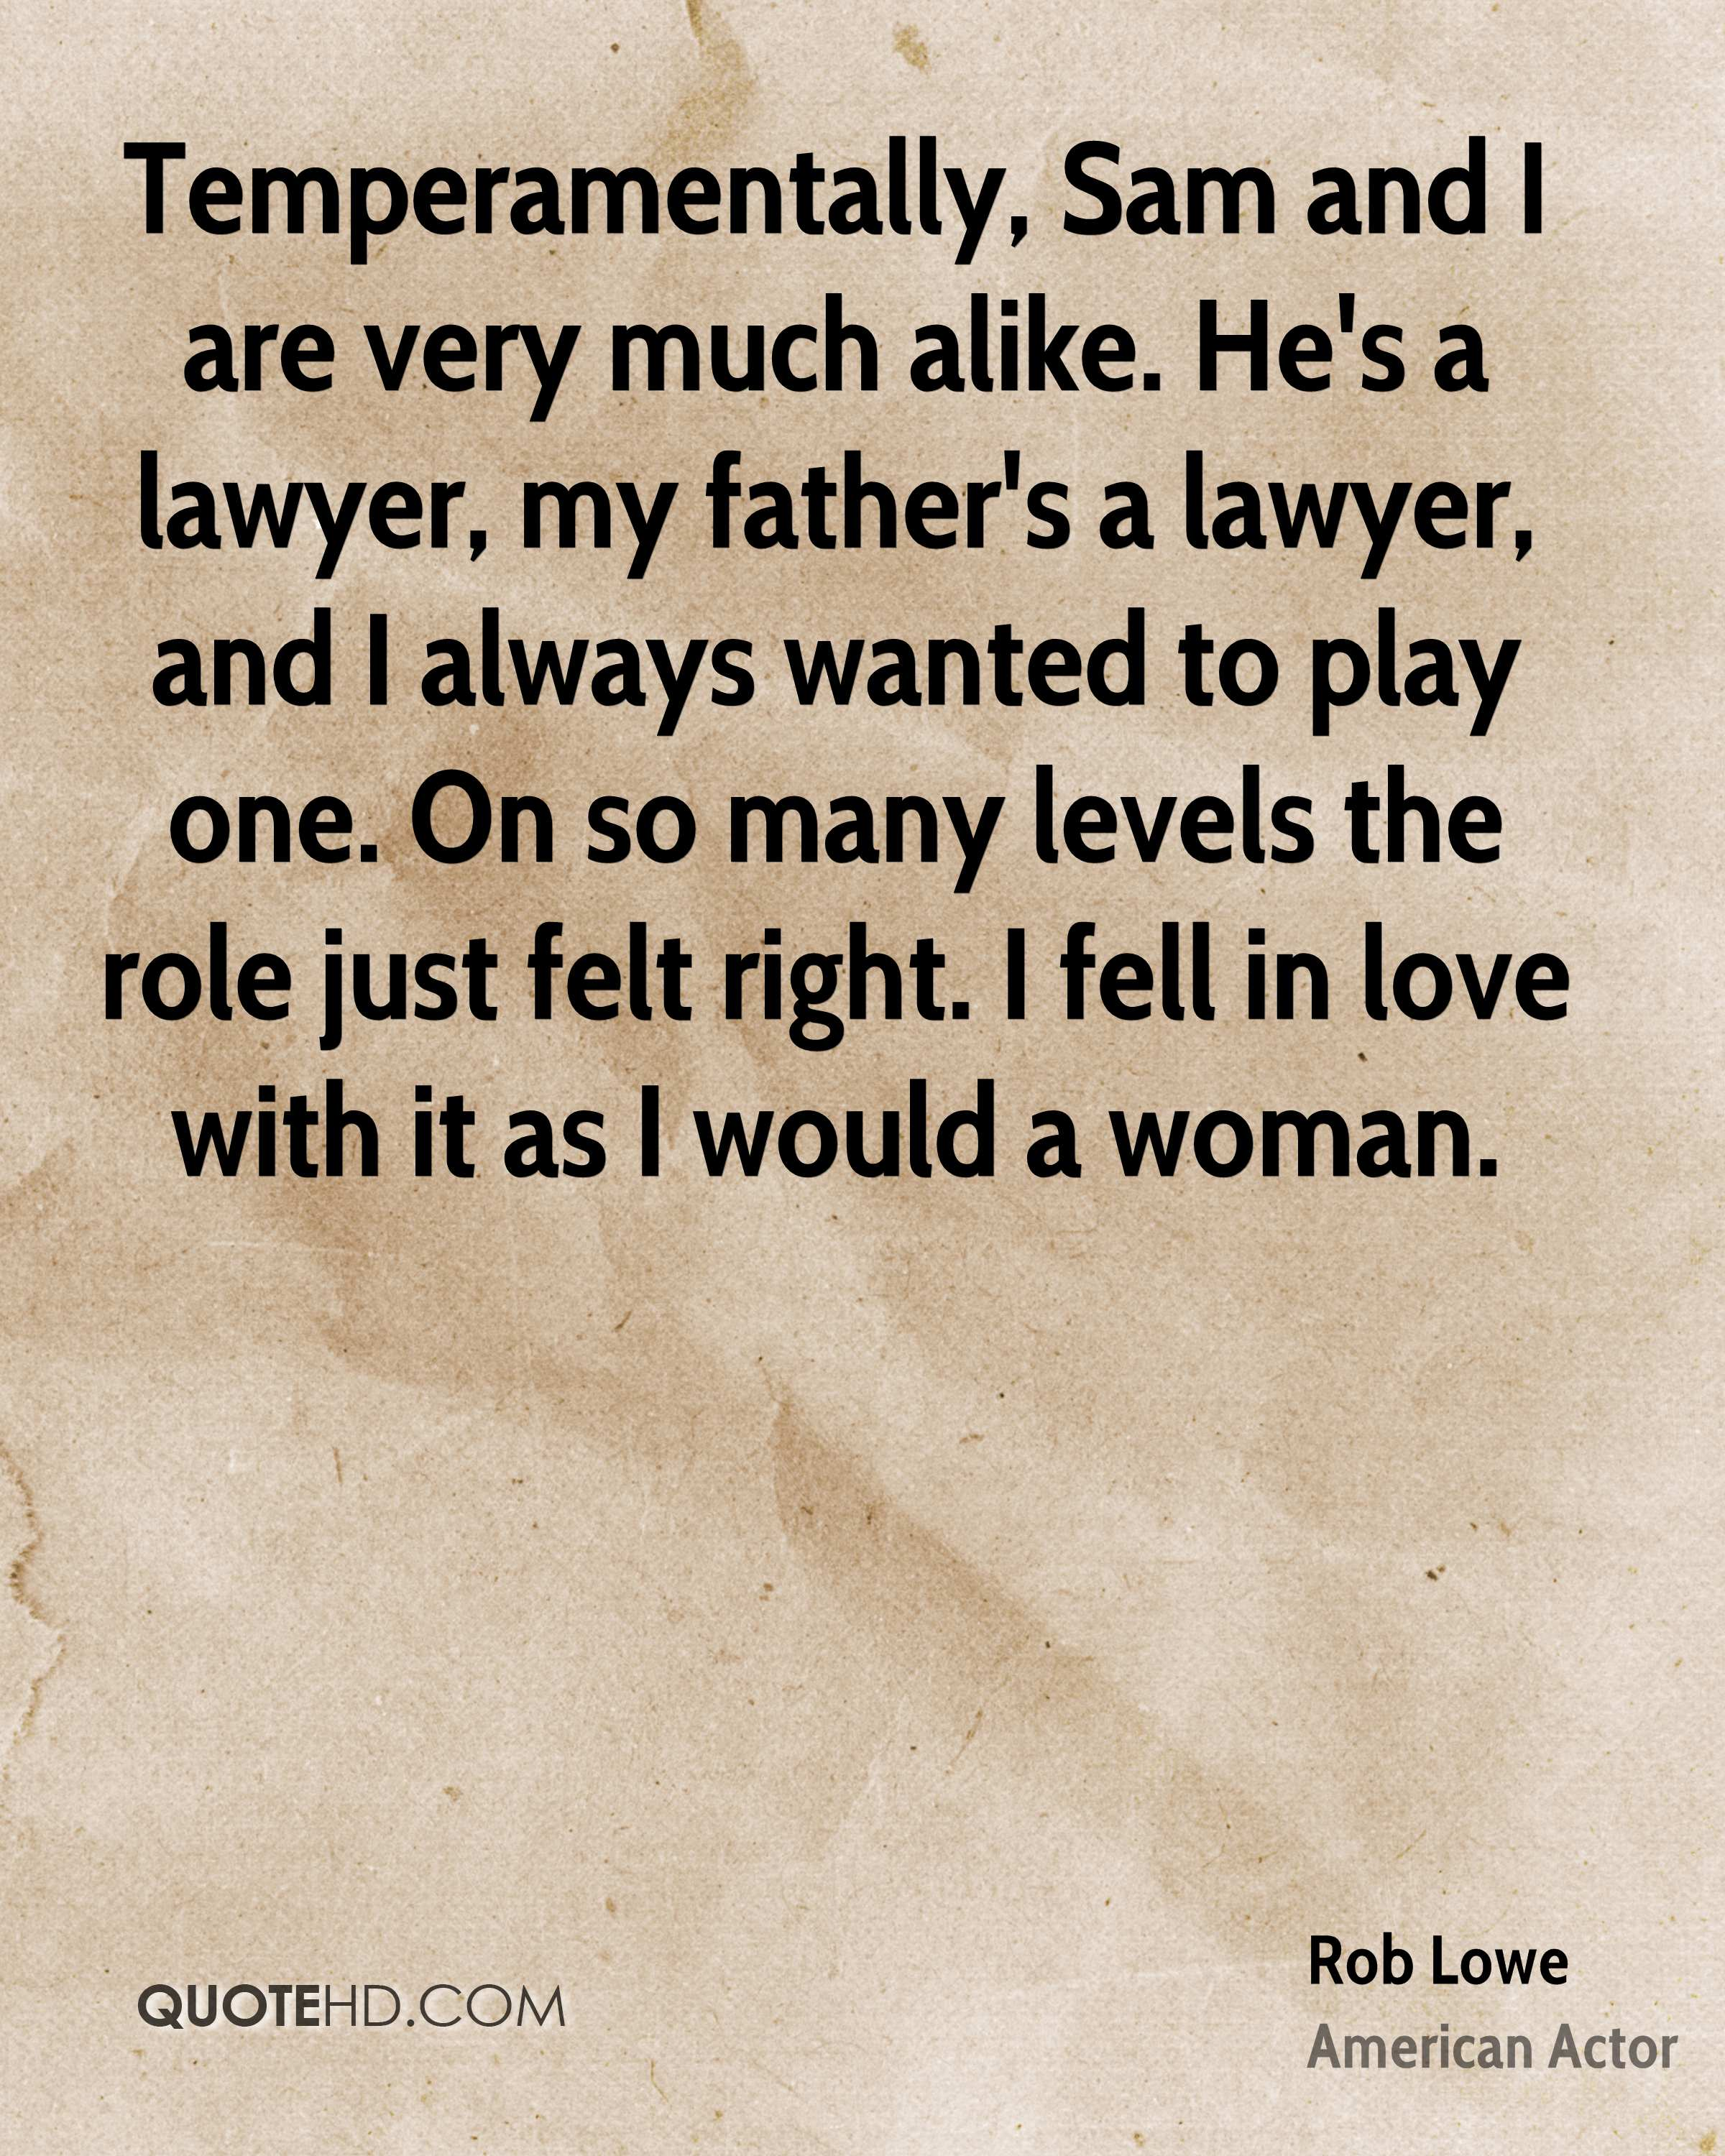 Temperamentally, Sam and I are very much alike. He's a lawyer, my father's a lawyer, and I always wanted to play one. On so many levels the role just felt right. I fell in love with it as I would a woman.